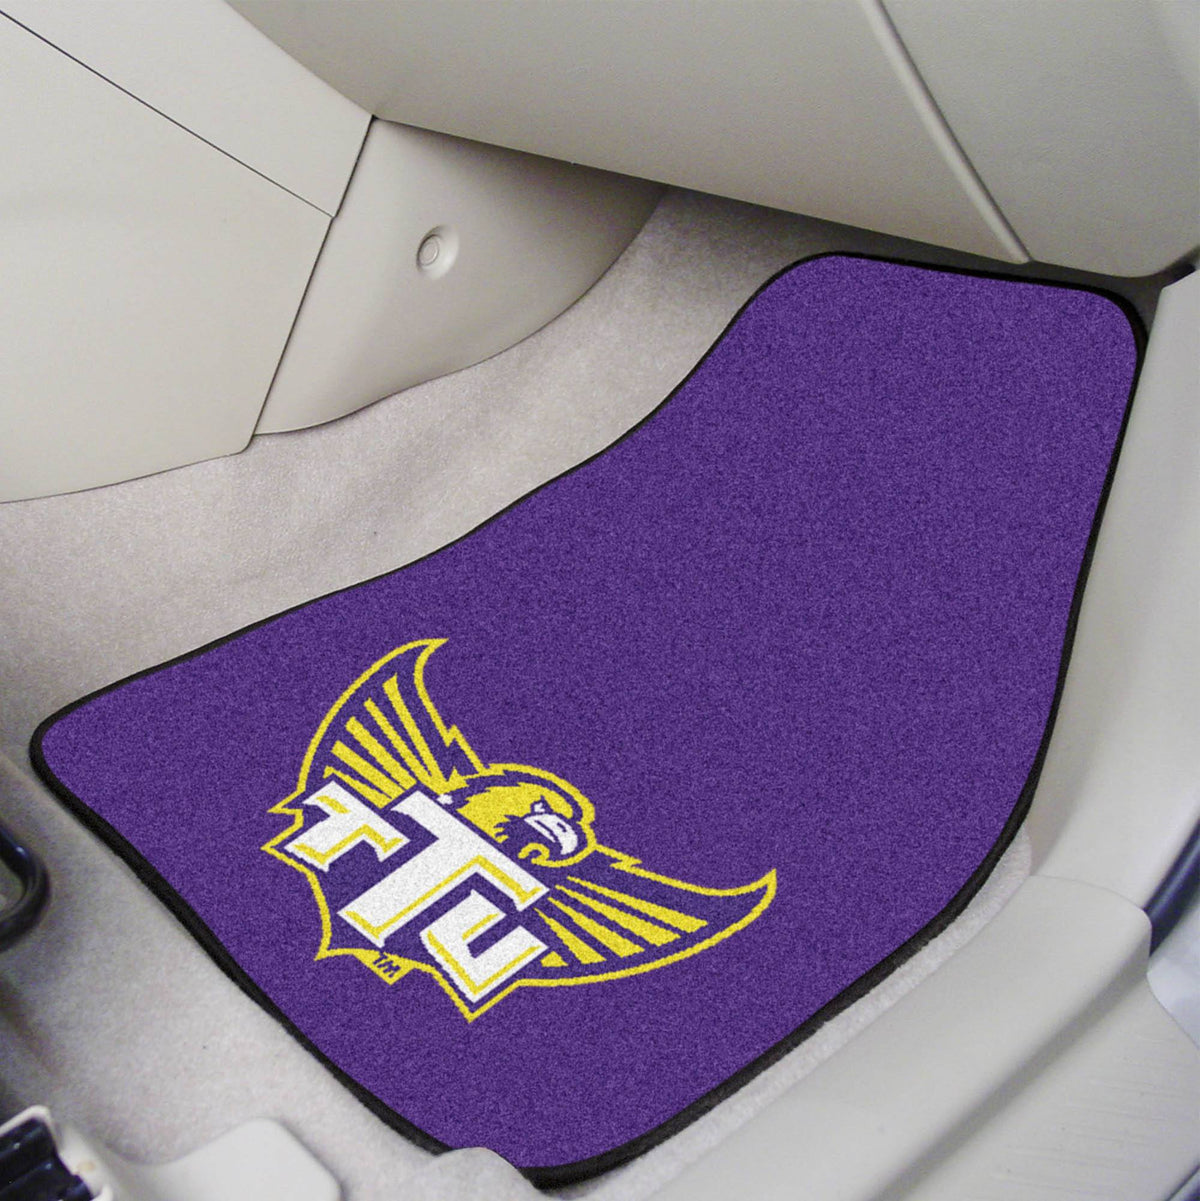 Collegiate - Carpet Car Mat, 2-Piece Set: T - Z Collegiate Car Mat, Front Car Mats, 2-pc Carpet Car Mat Set, Collegiate, Auto Fan Mats Tennessee Tech